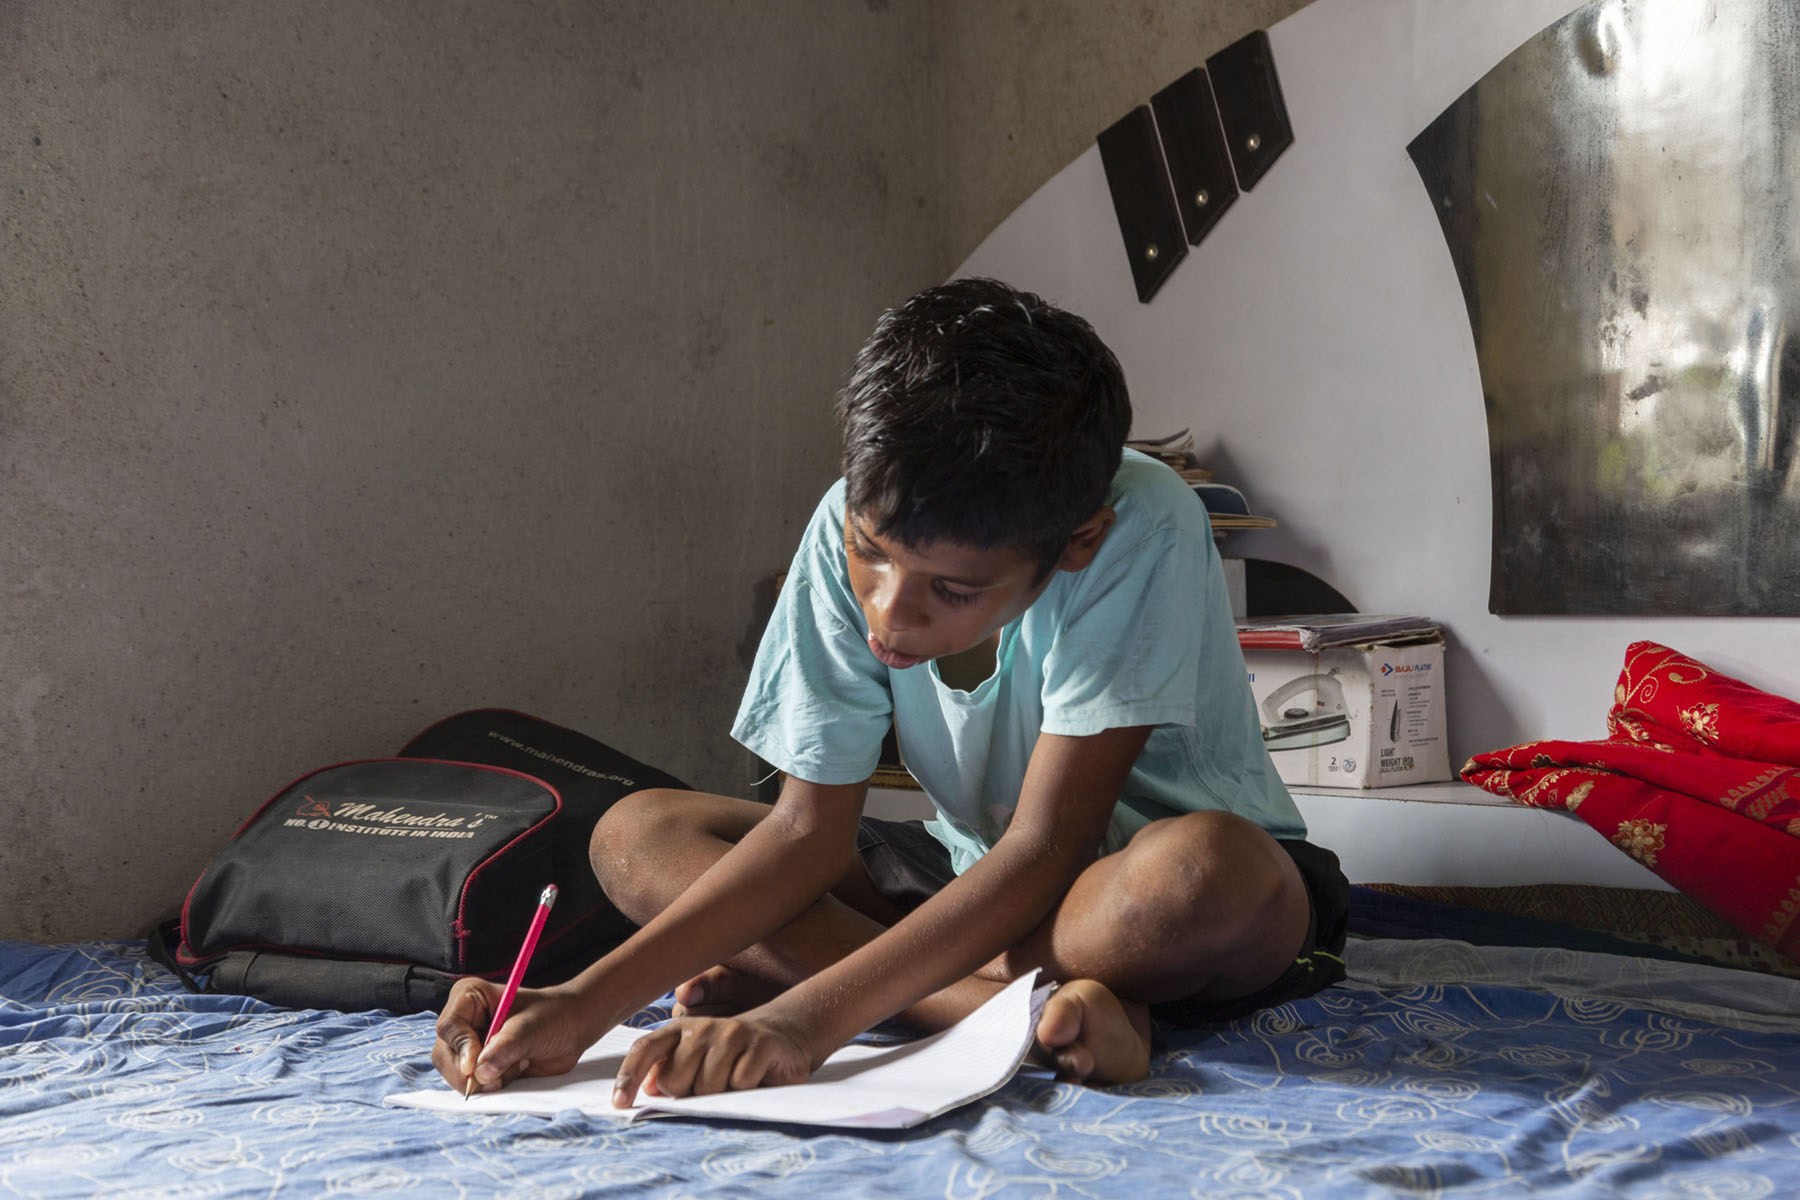 Aman in a light blue half-sleeved T-shirt sits cross-legged on a bed, head bent over an open notebook. He is writing with a pink-coloured lead pencil with an eraser tip. A black schoolbag lies next to him. The bed is covered with a light blue sheet.